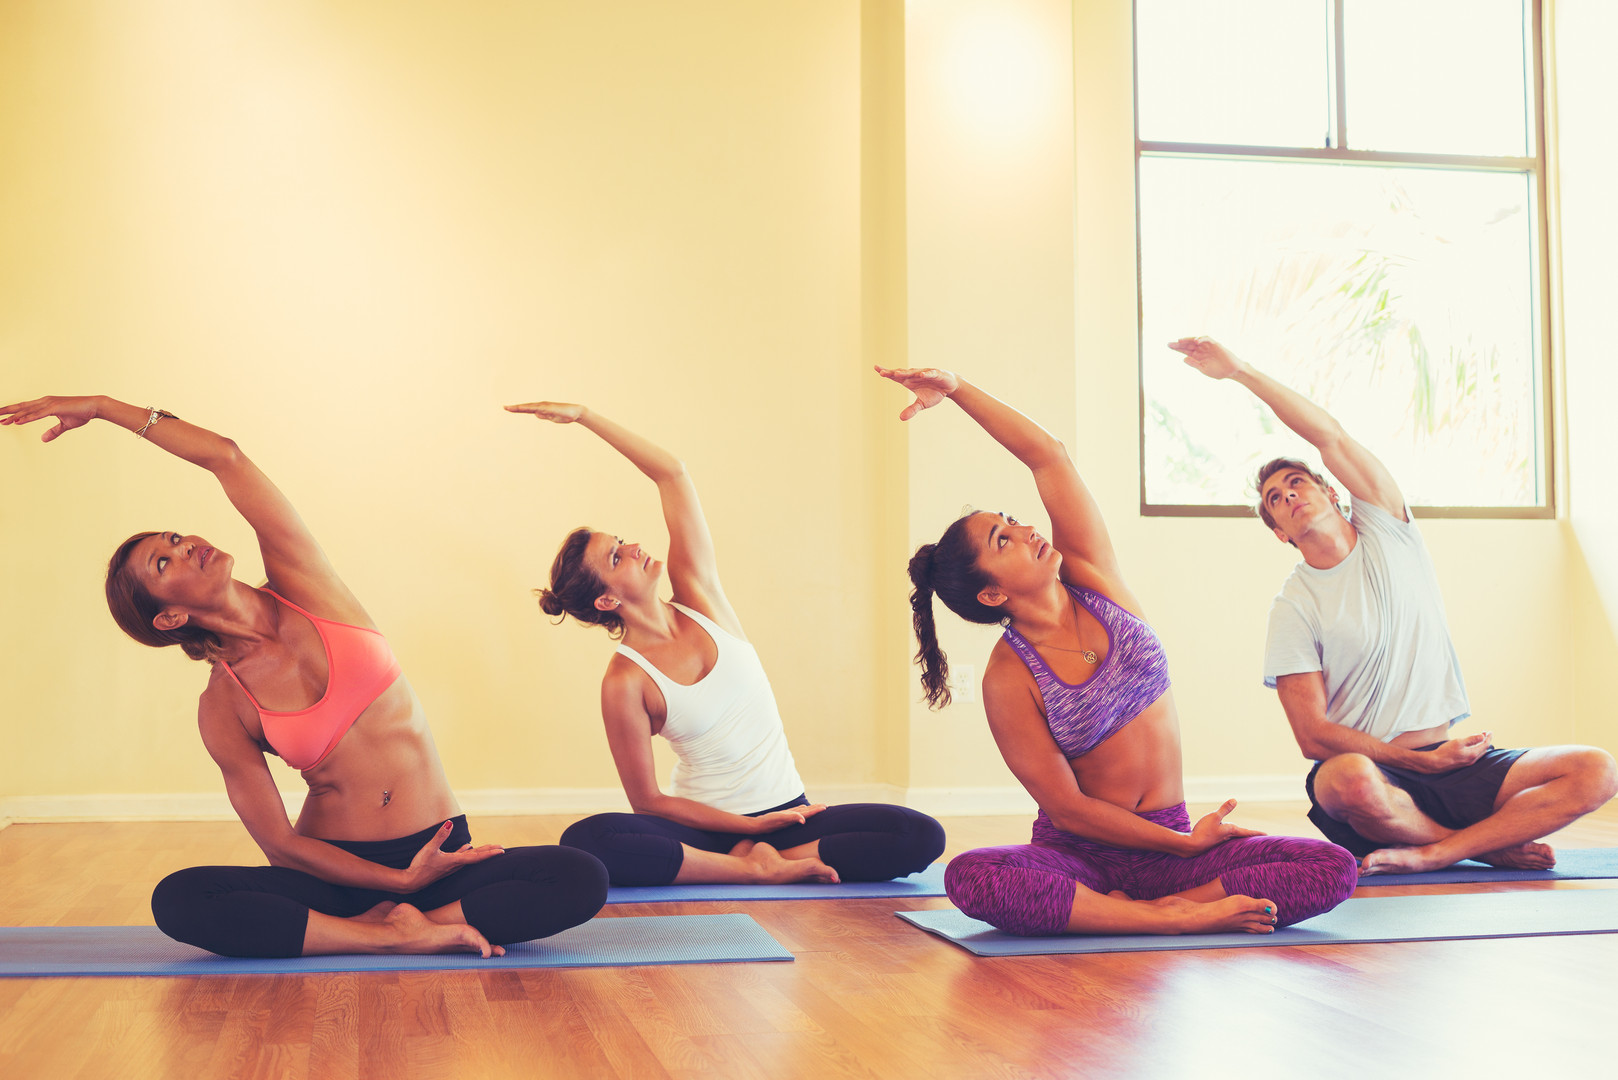 Group of People Relaxing and Doing Yoga.